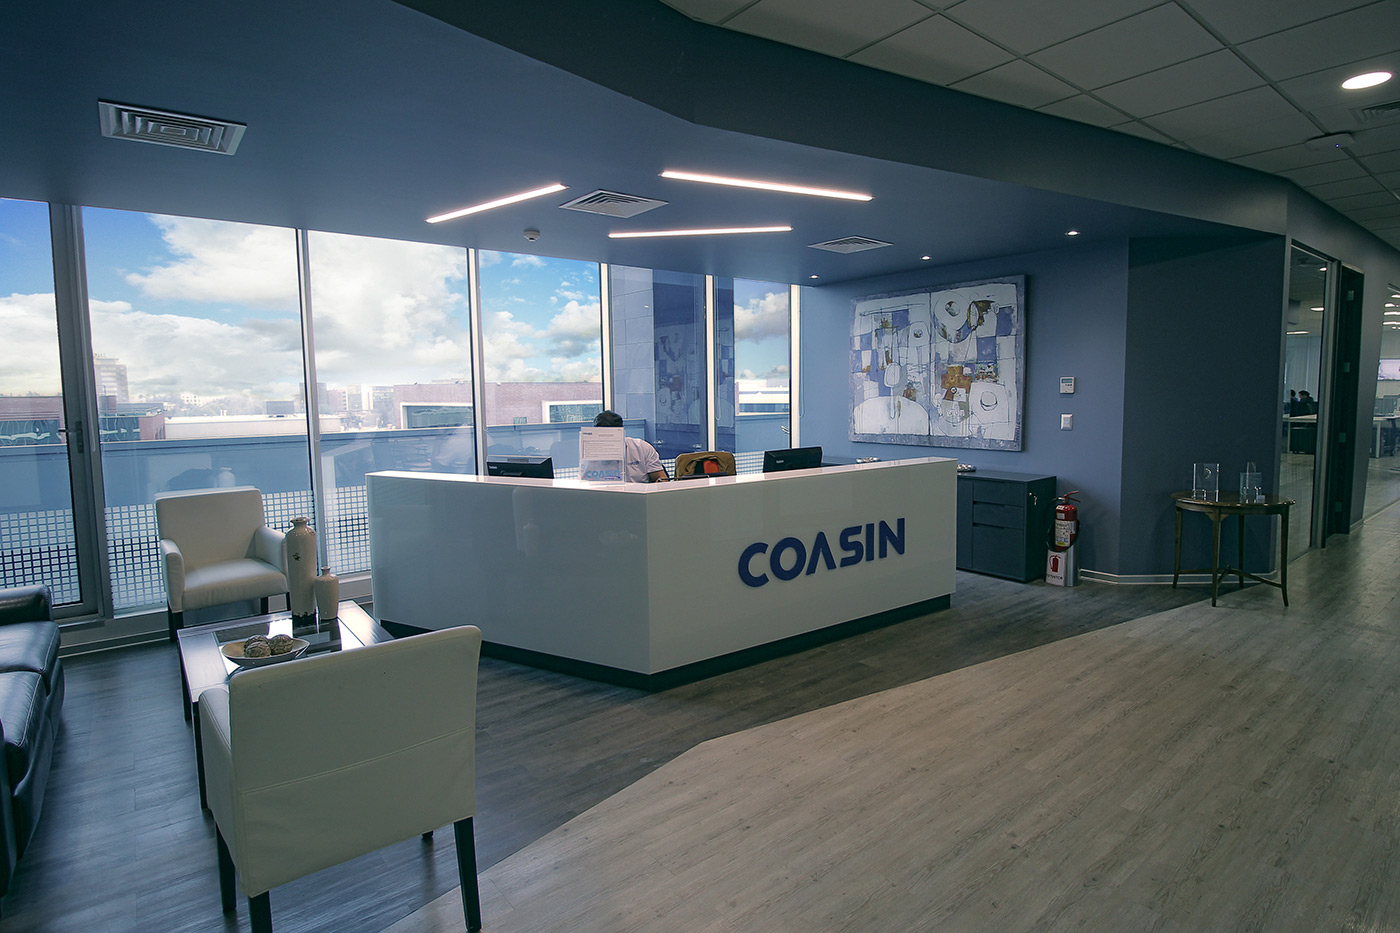 coasin_rebrand-02.jpg